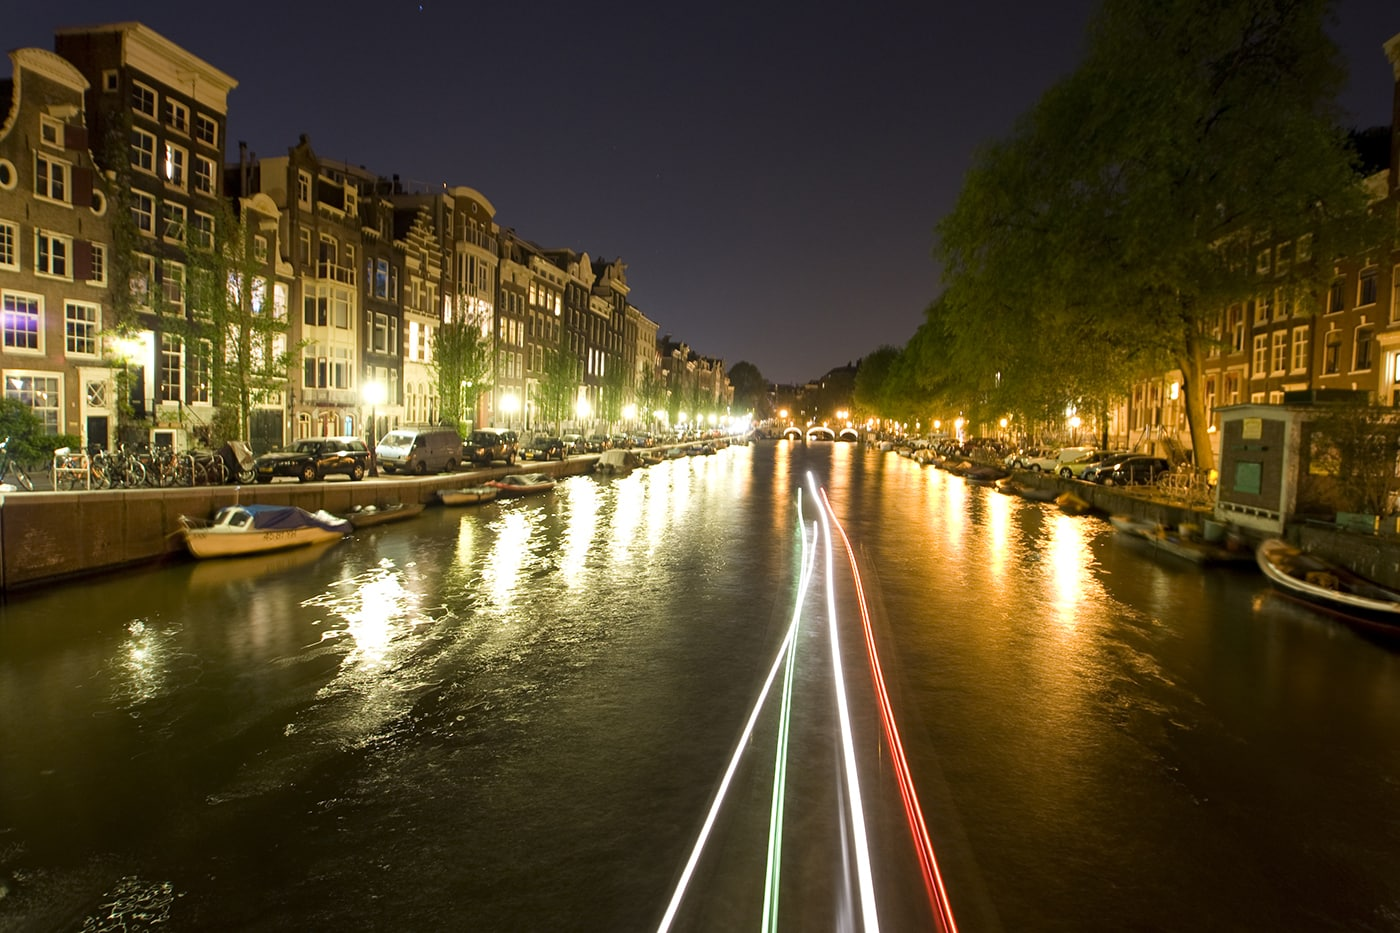 The canals in Amsterdam.